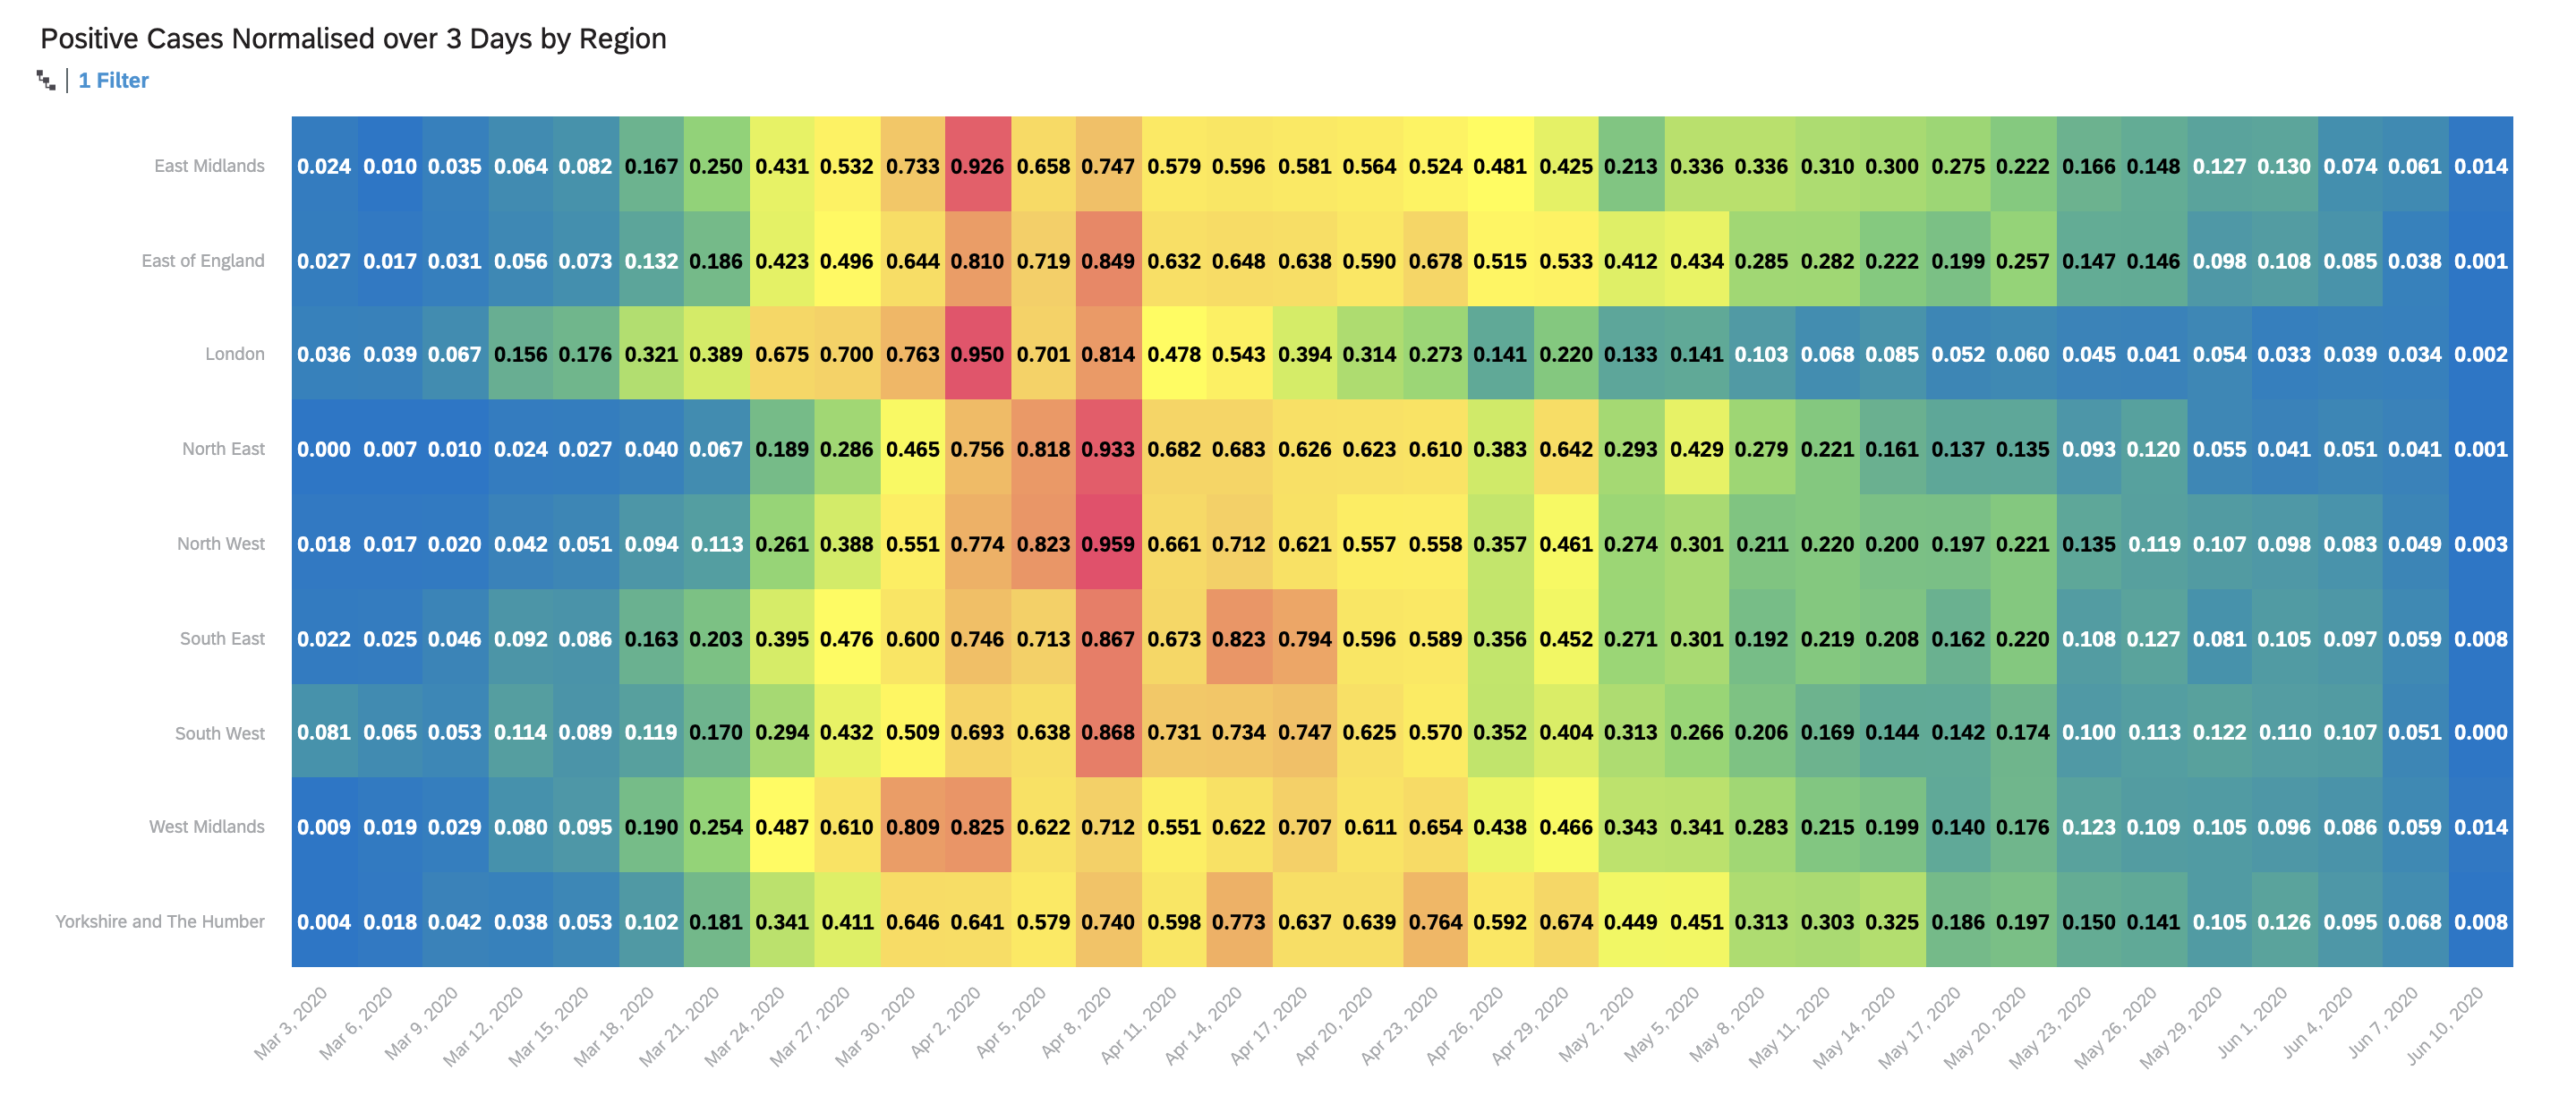 Figure%20x%2C%20SAC%20Heatmap%20of%20Cases%20over%20Time